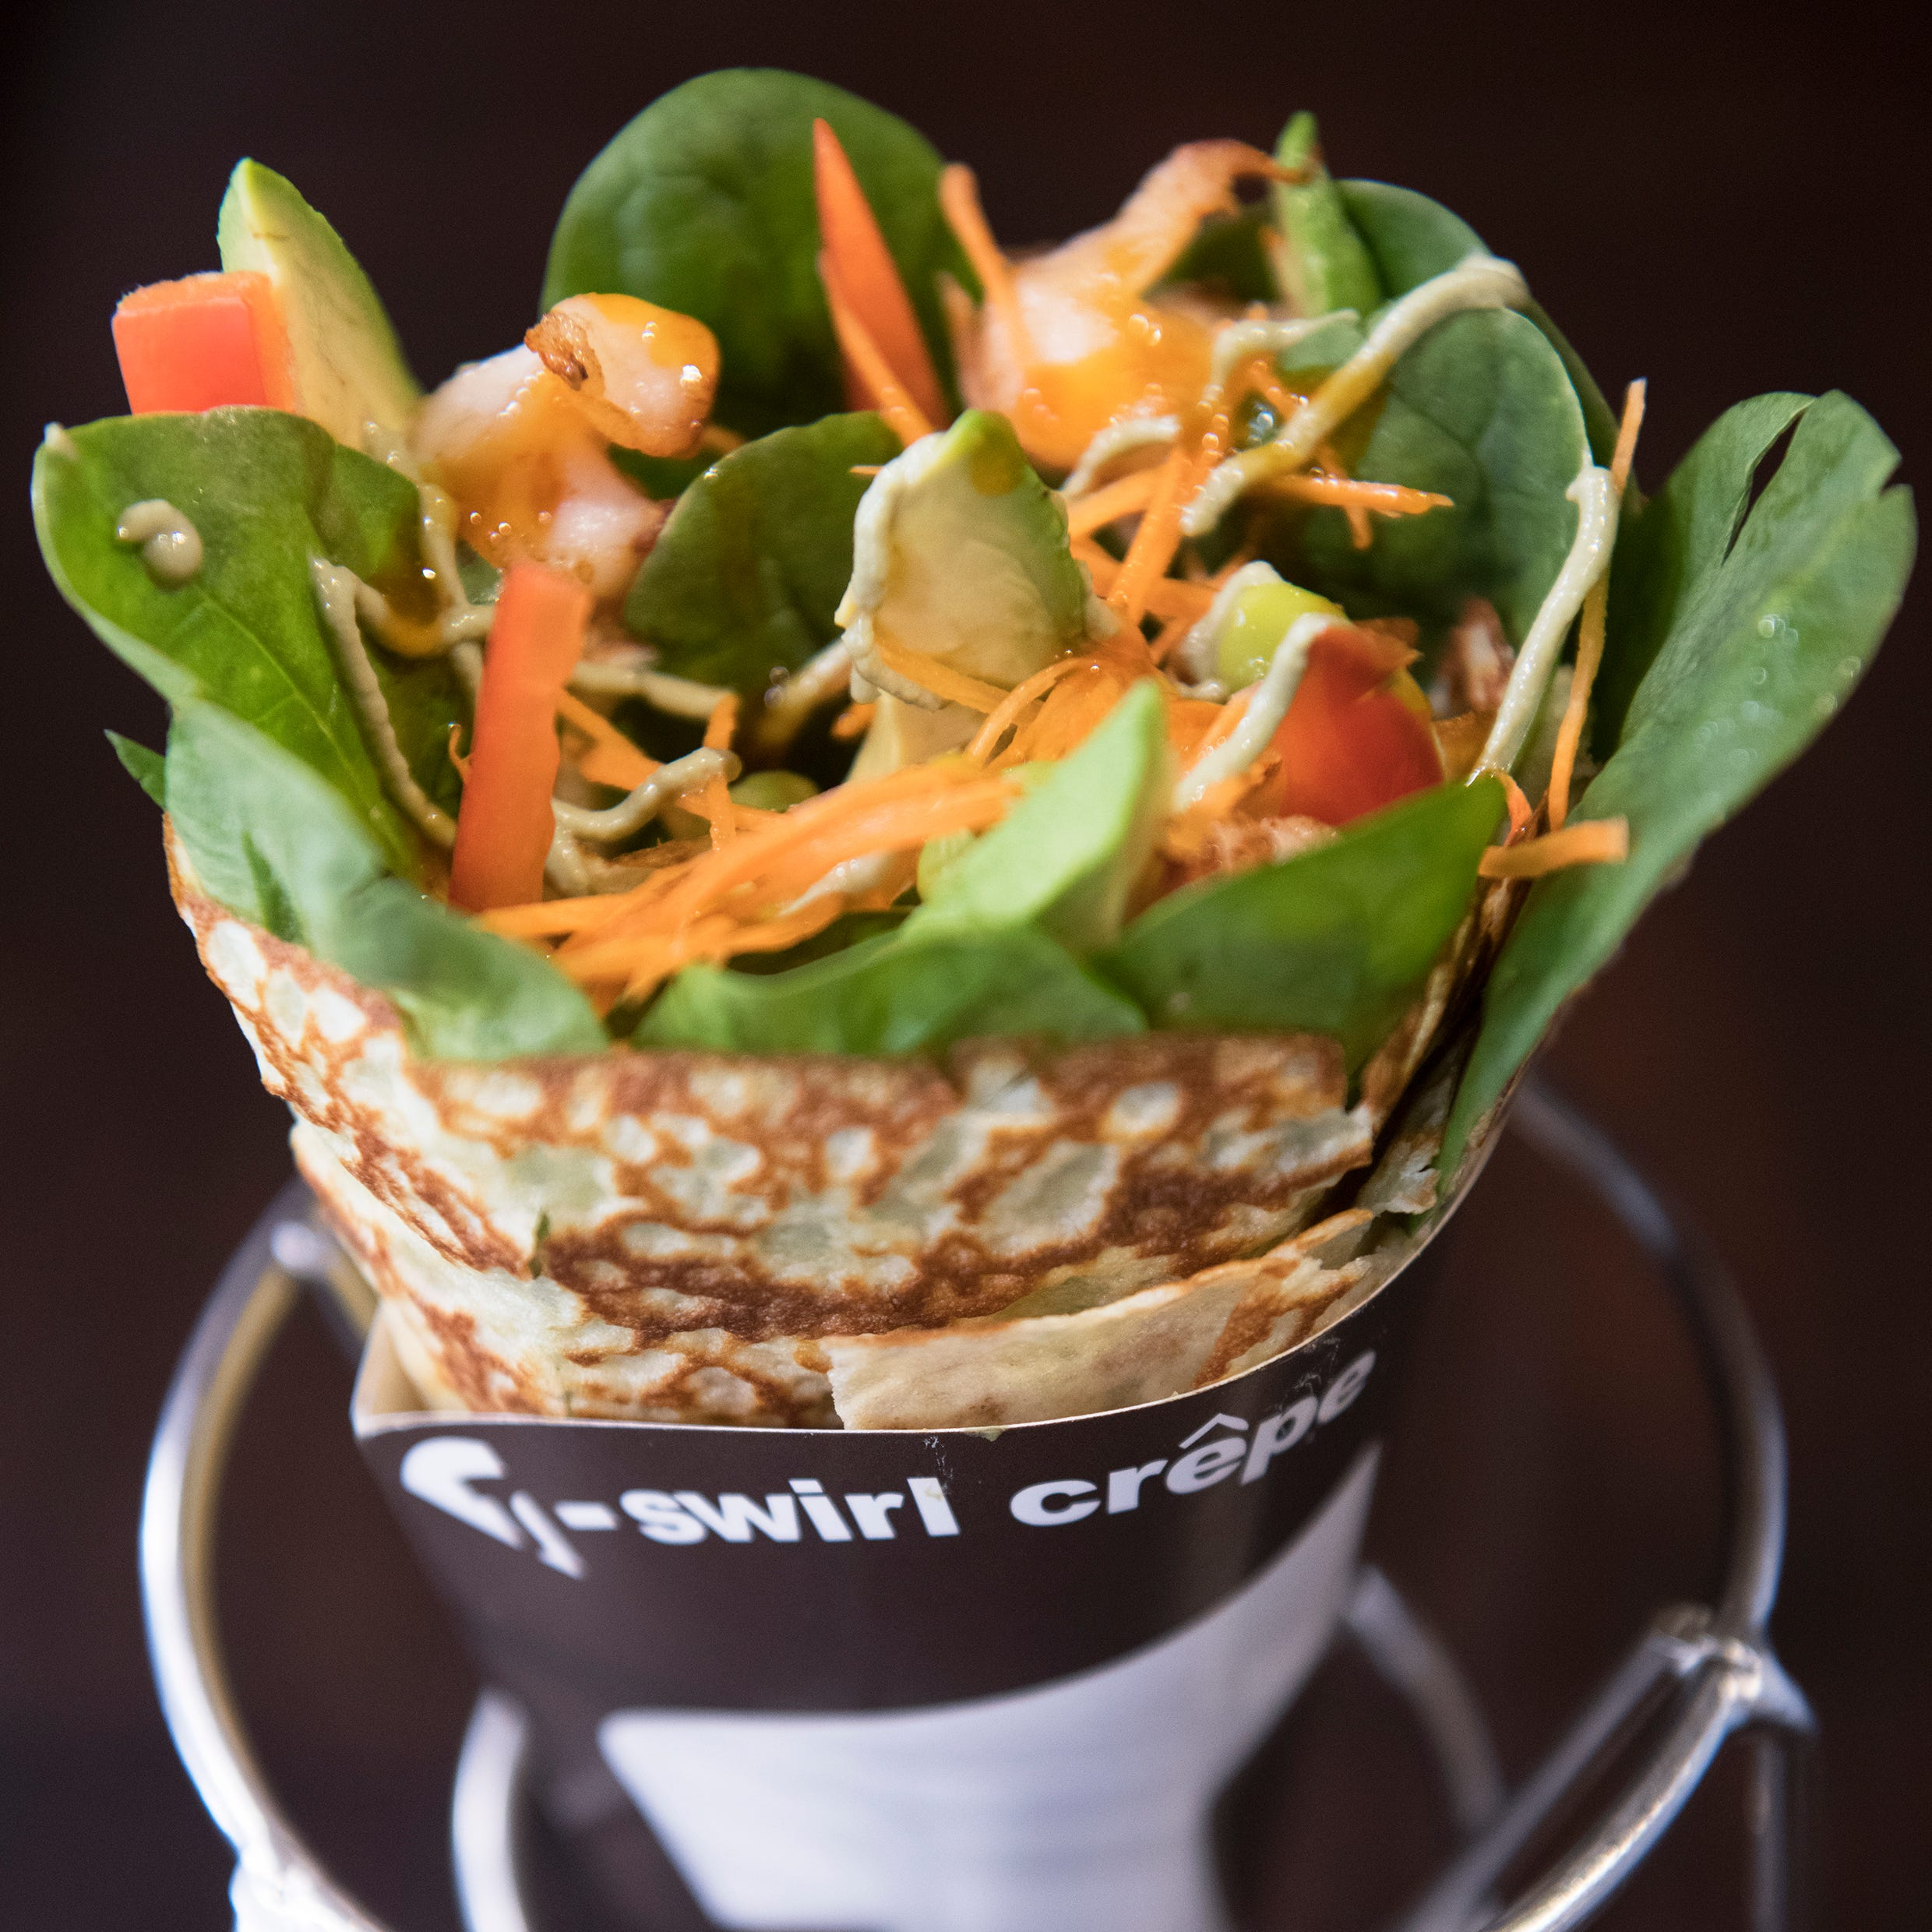 T-Swirl's Japanese crêpes delight and satisfy in Haddonfield